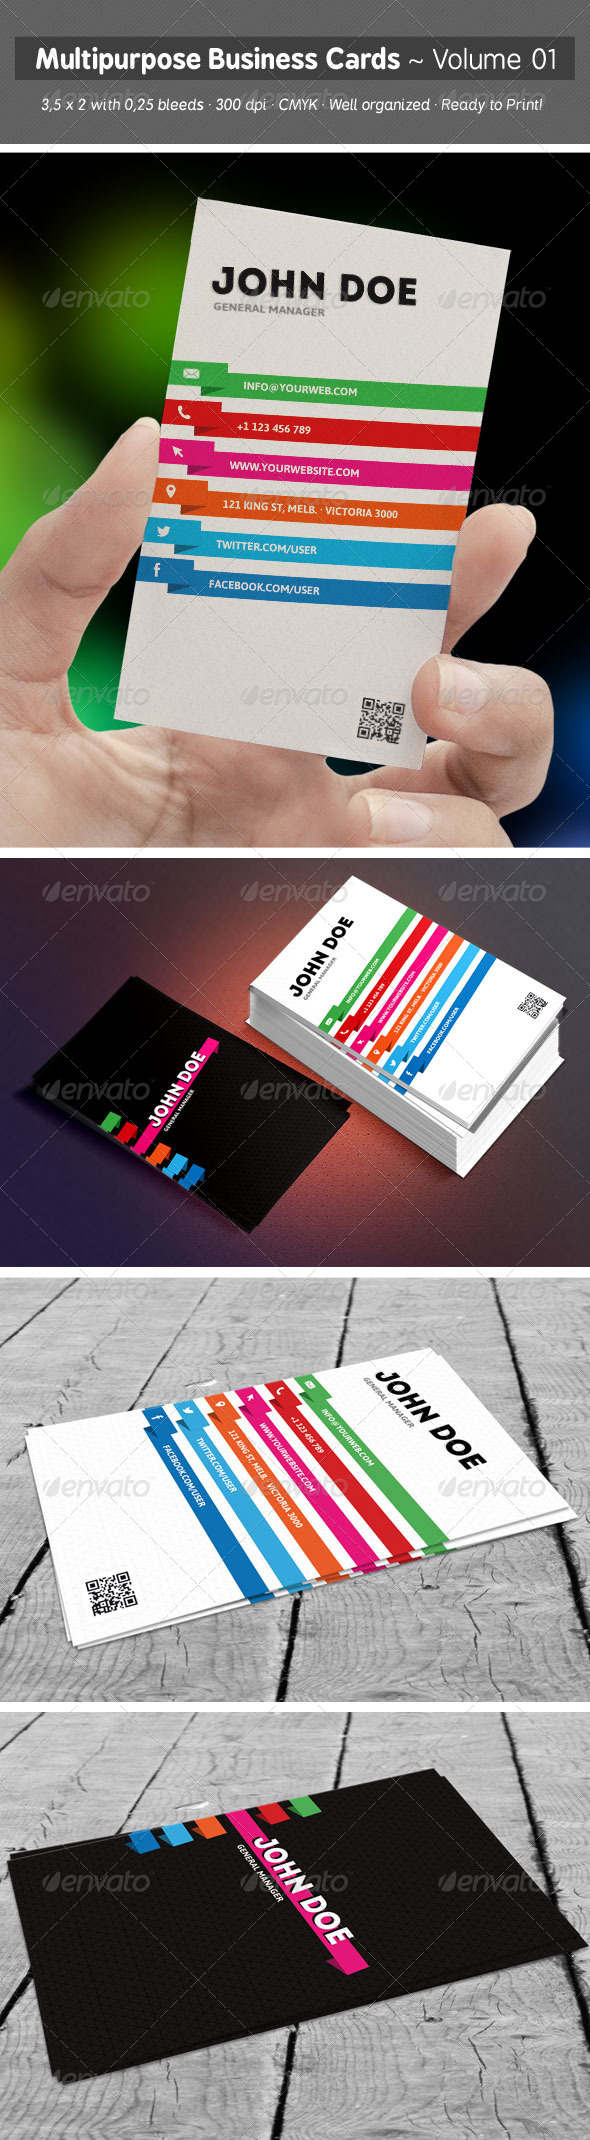 Multipurpose Business Cards - Volume 01 - Creative Business Cards